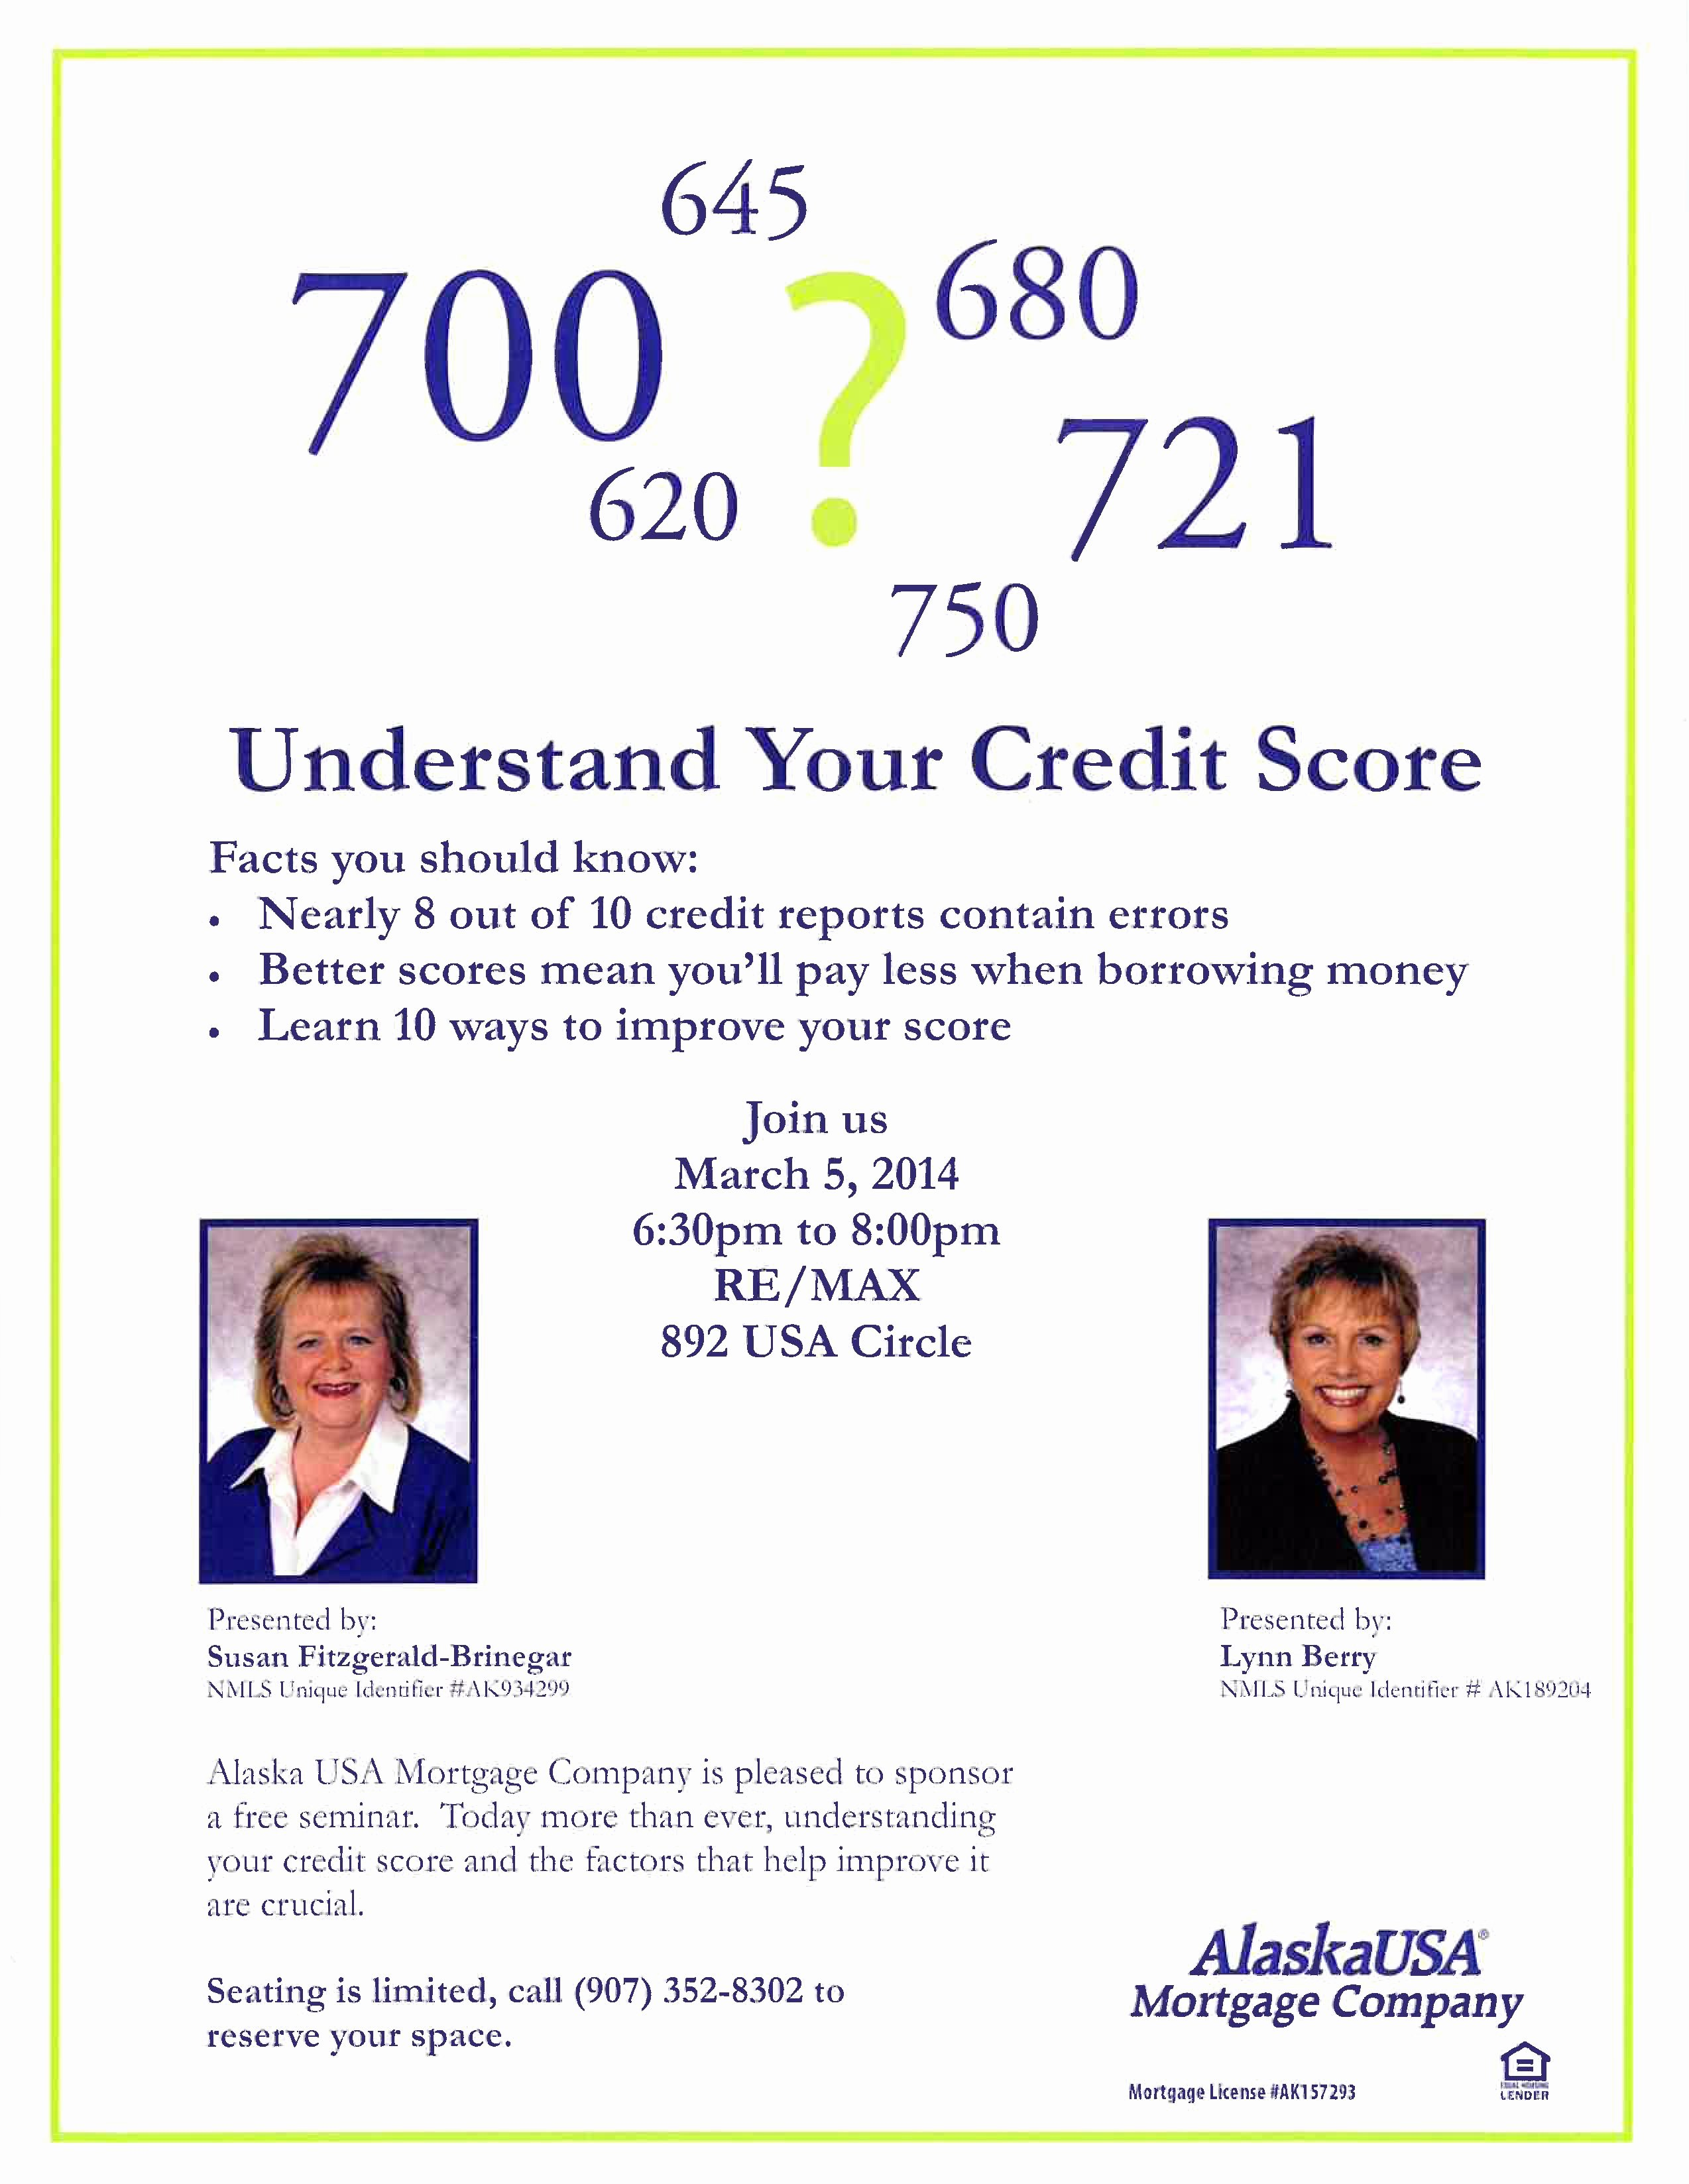 Credit Repair Flyer Template Lovely Understand Your Credit Score Free Seminar Mat Su Valley